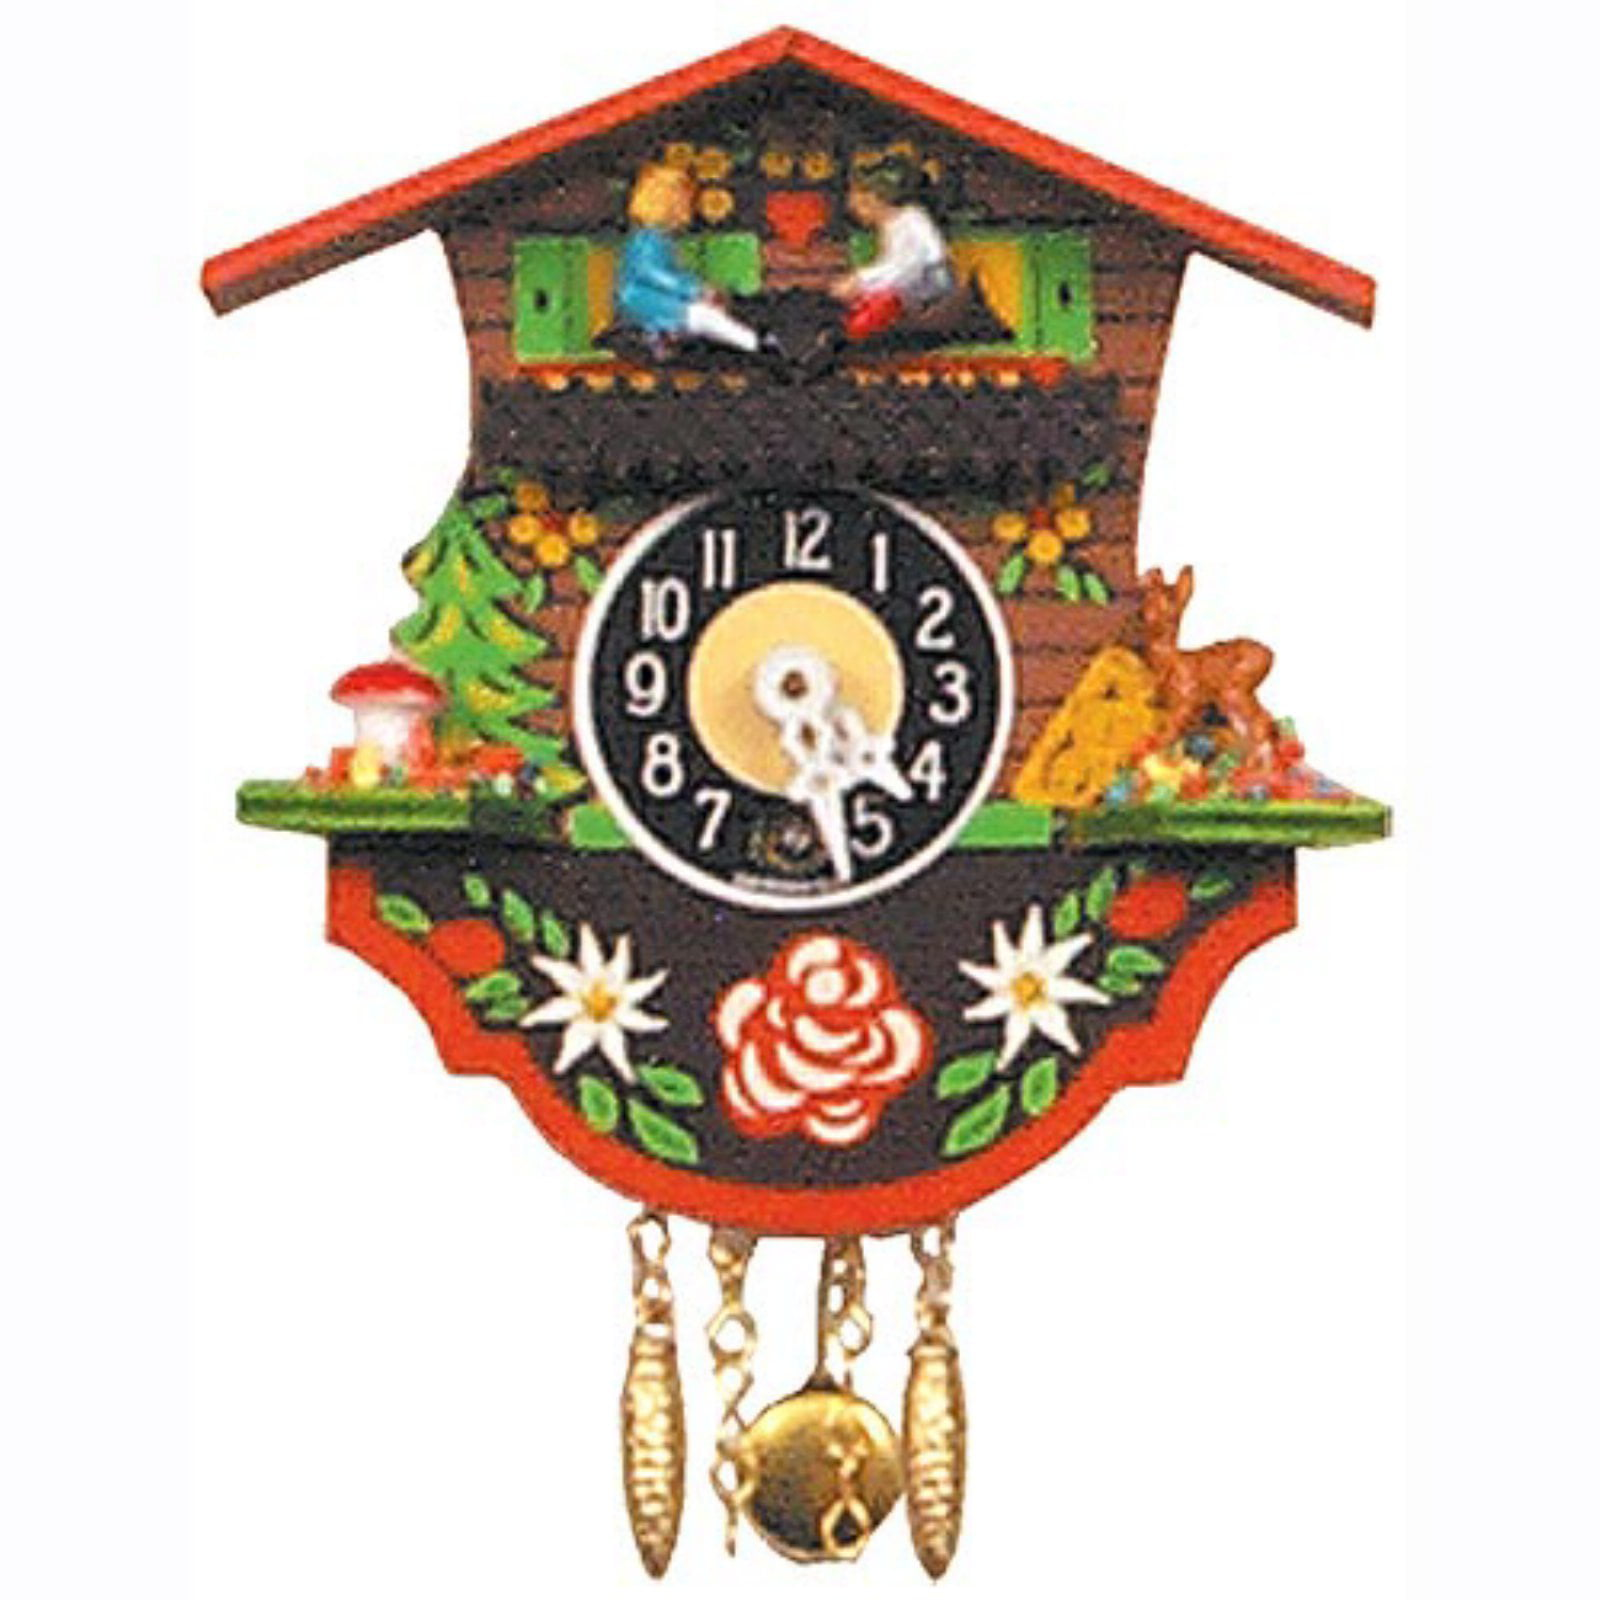 4 In. Black Forest Chalet Cuckoo Clock by Alexander Taron